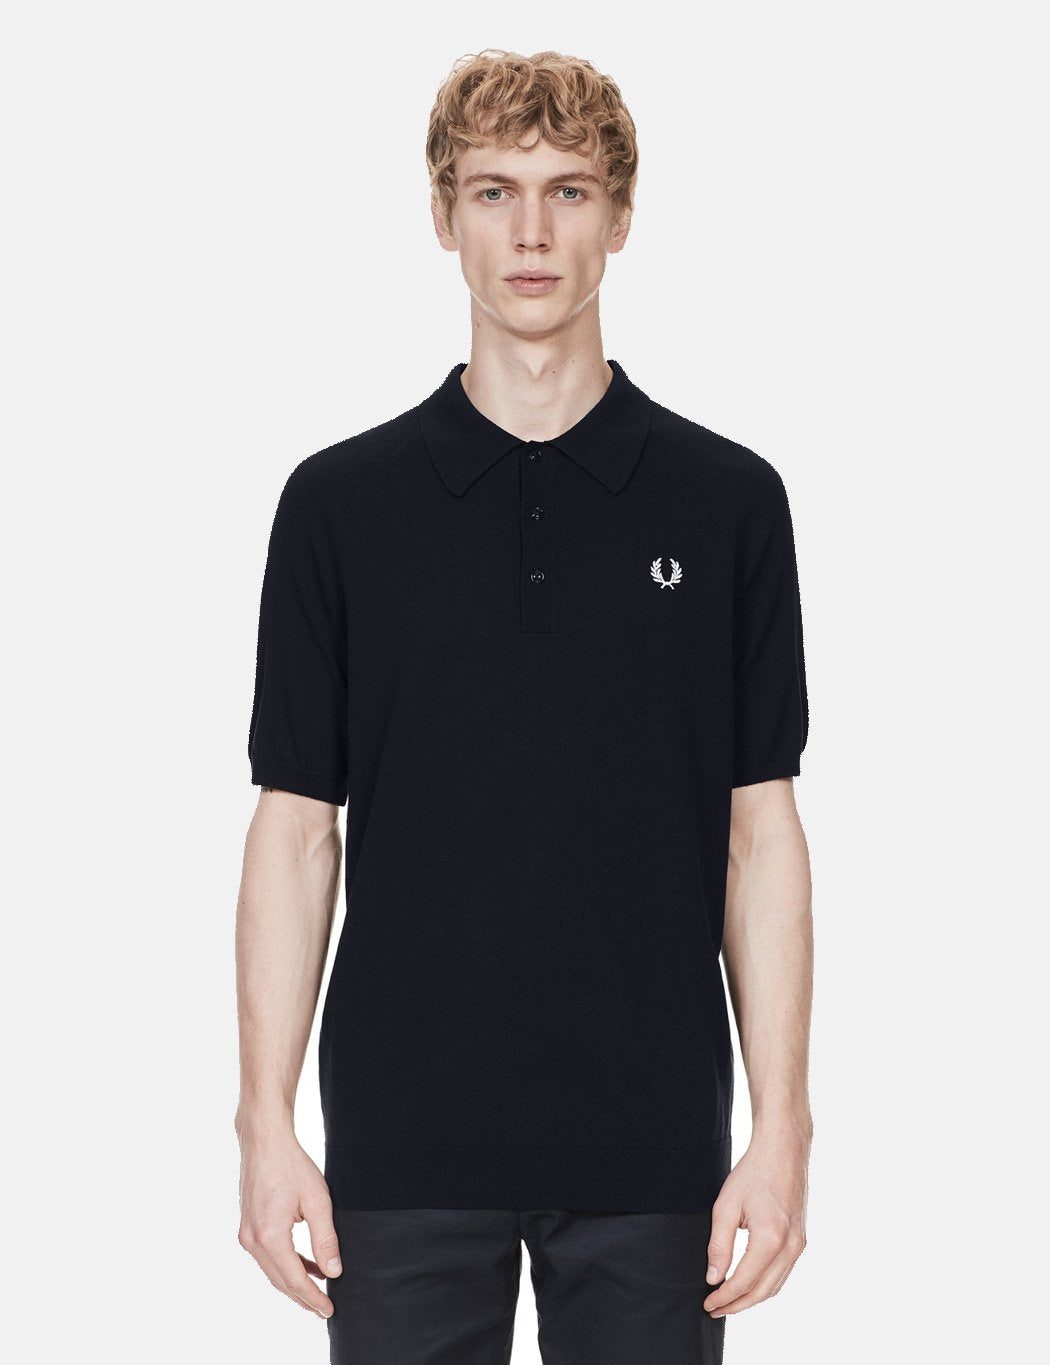 Fred Perry Short Sleeve Raglan Knitted Shirt - Navy